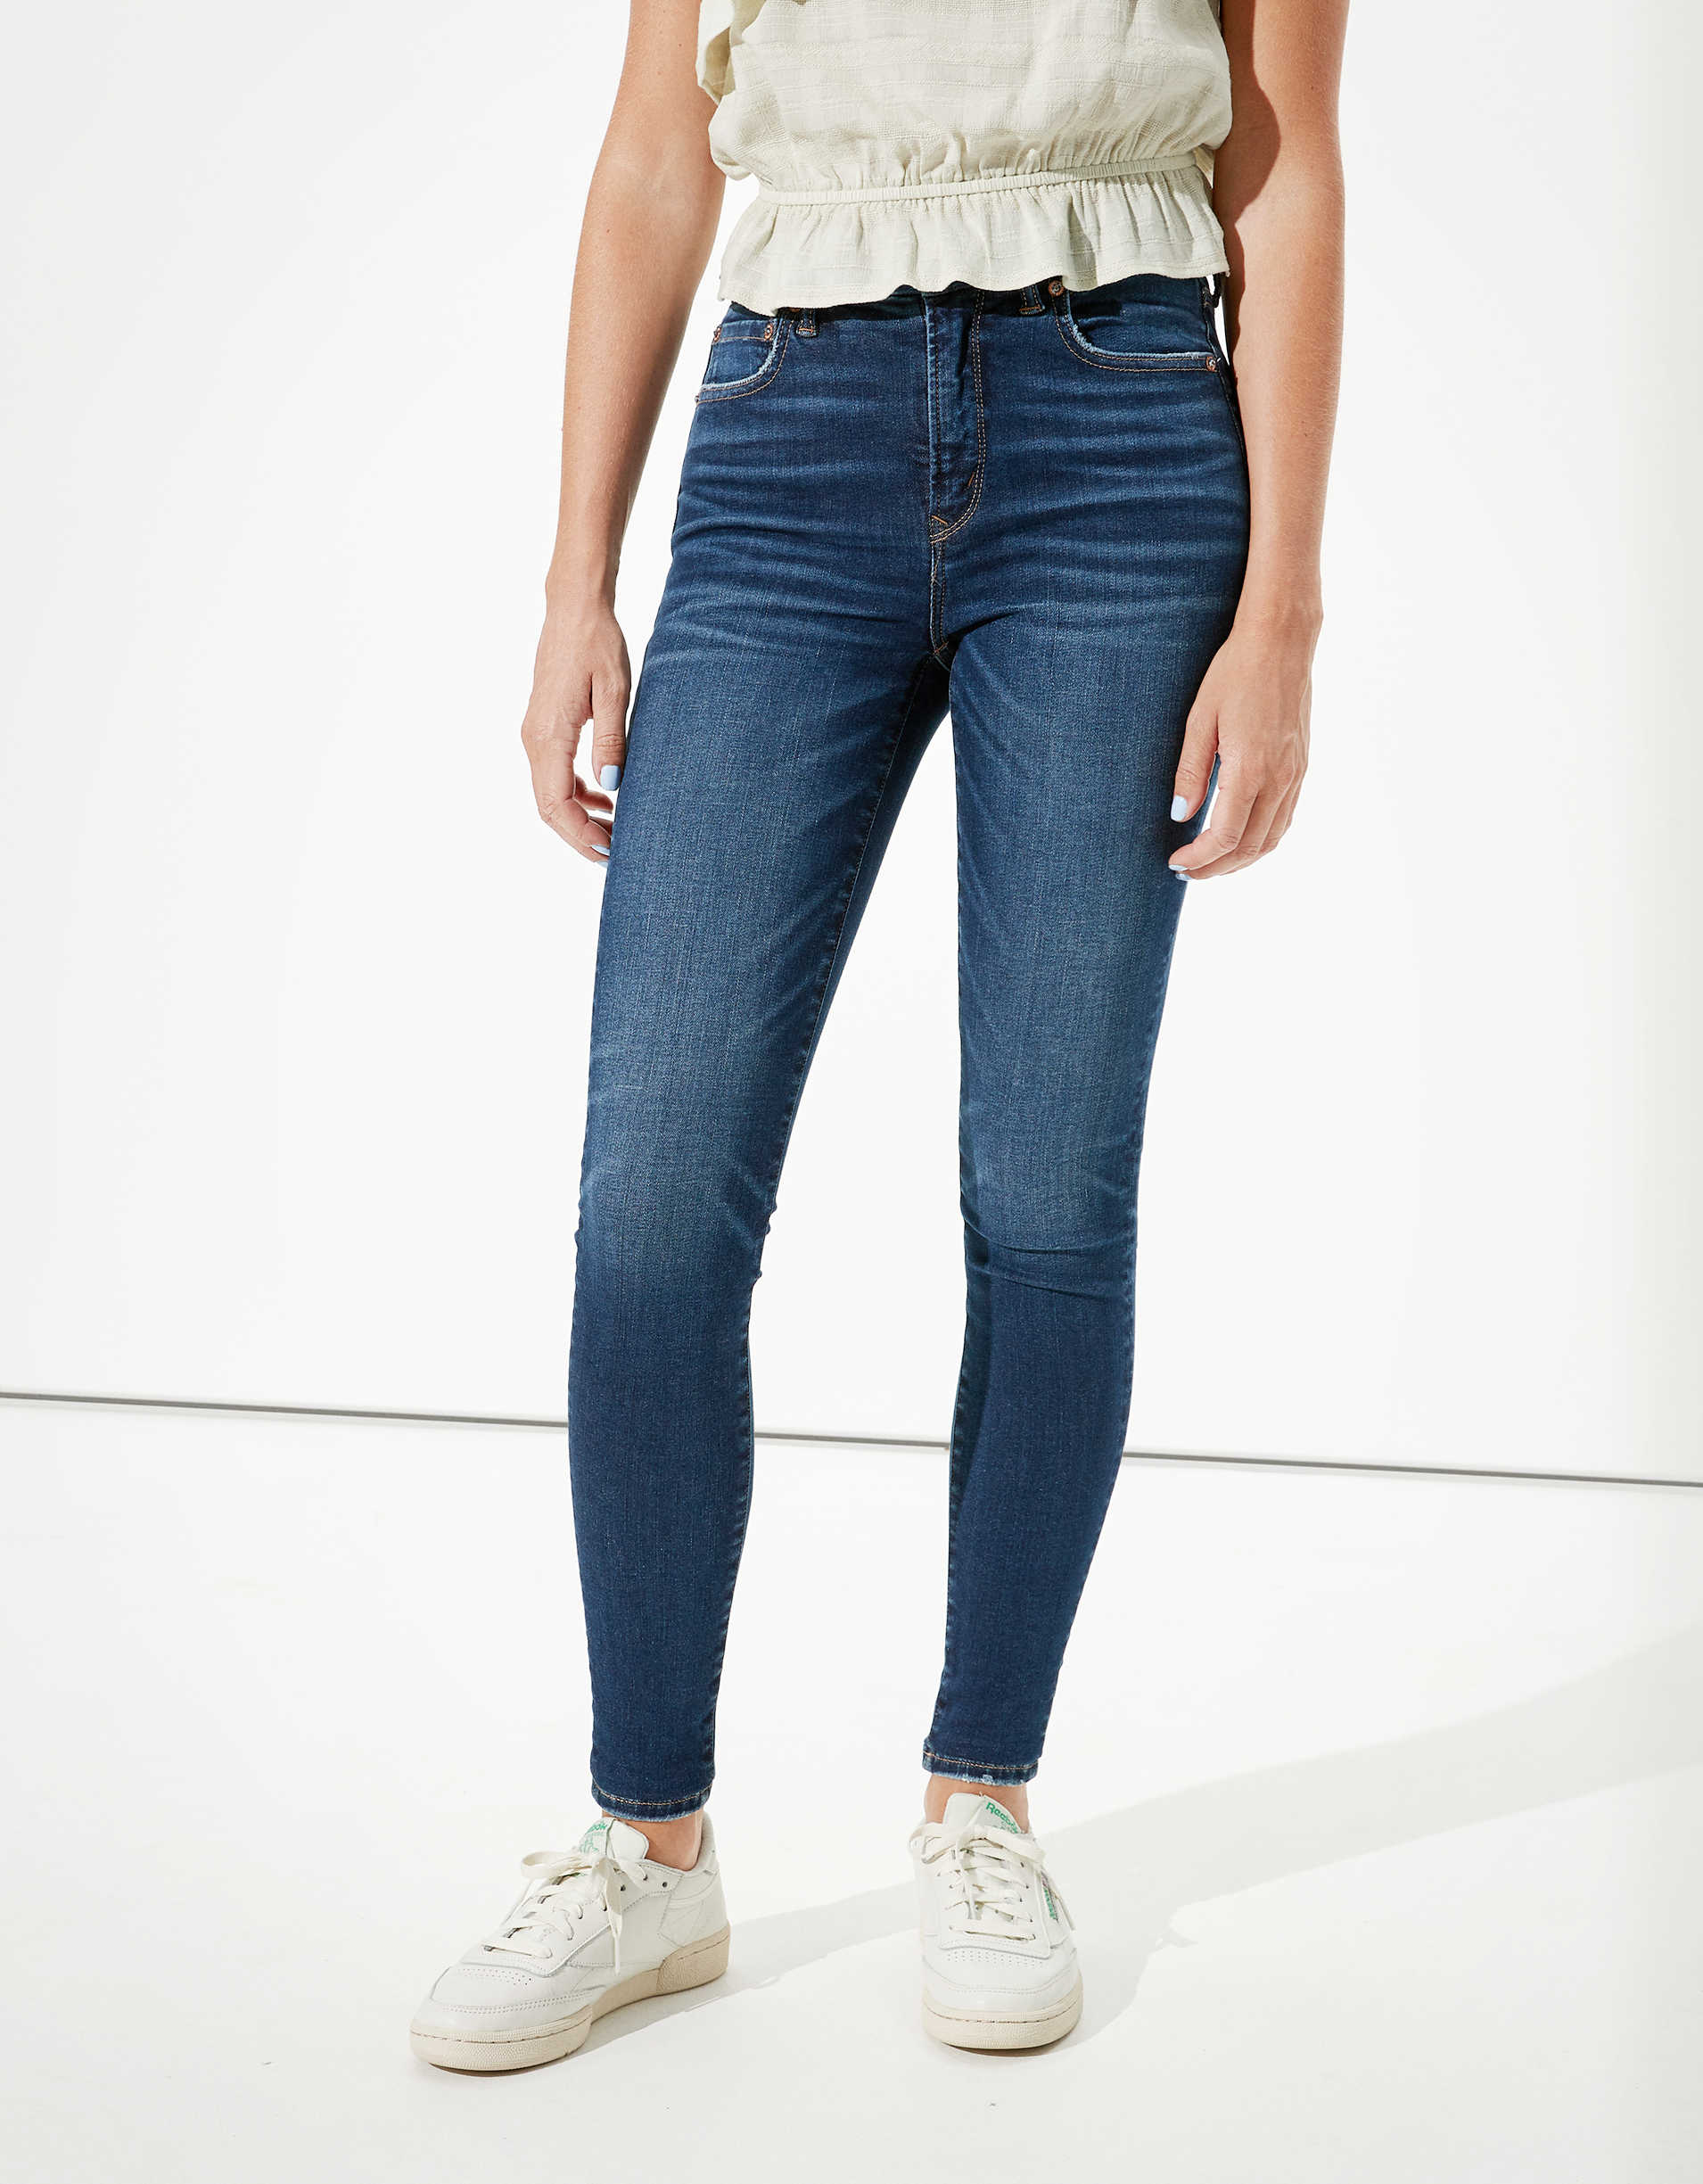 AE The Lu(x)e Jean Super High-Waisted Jegging